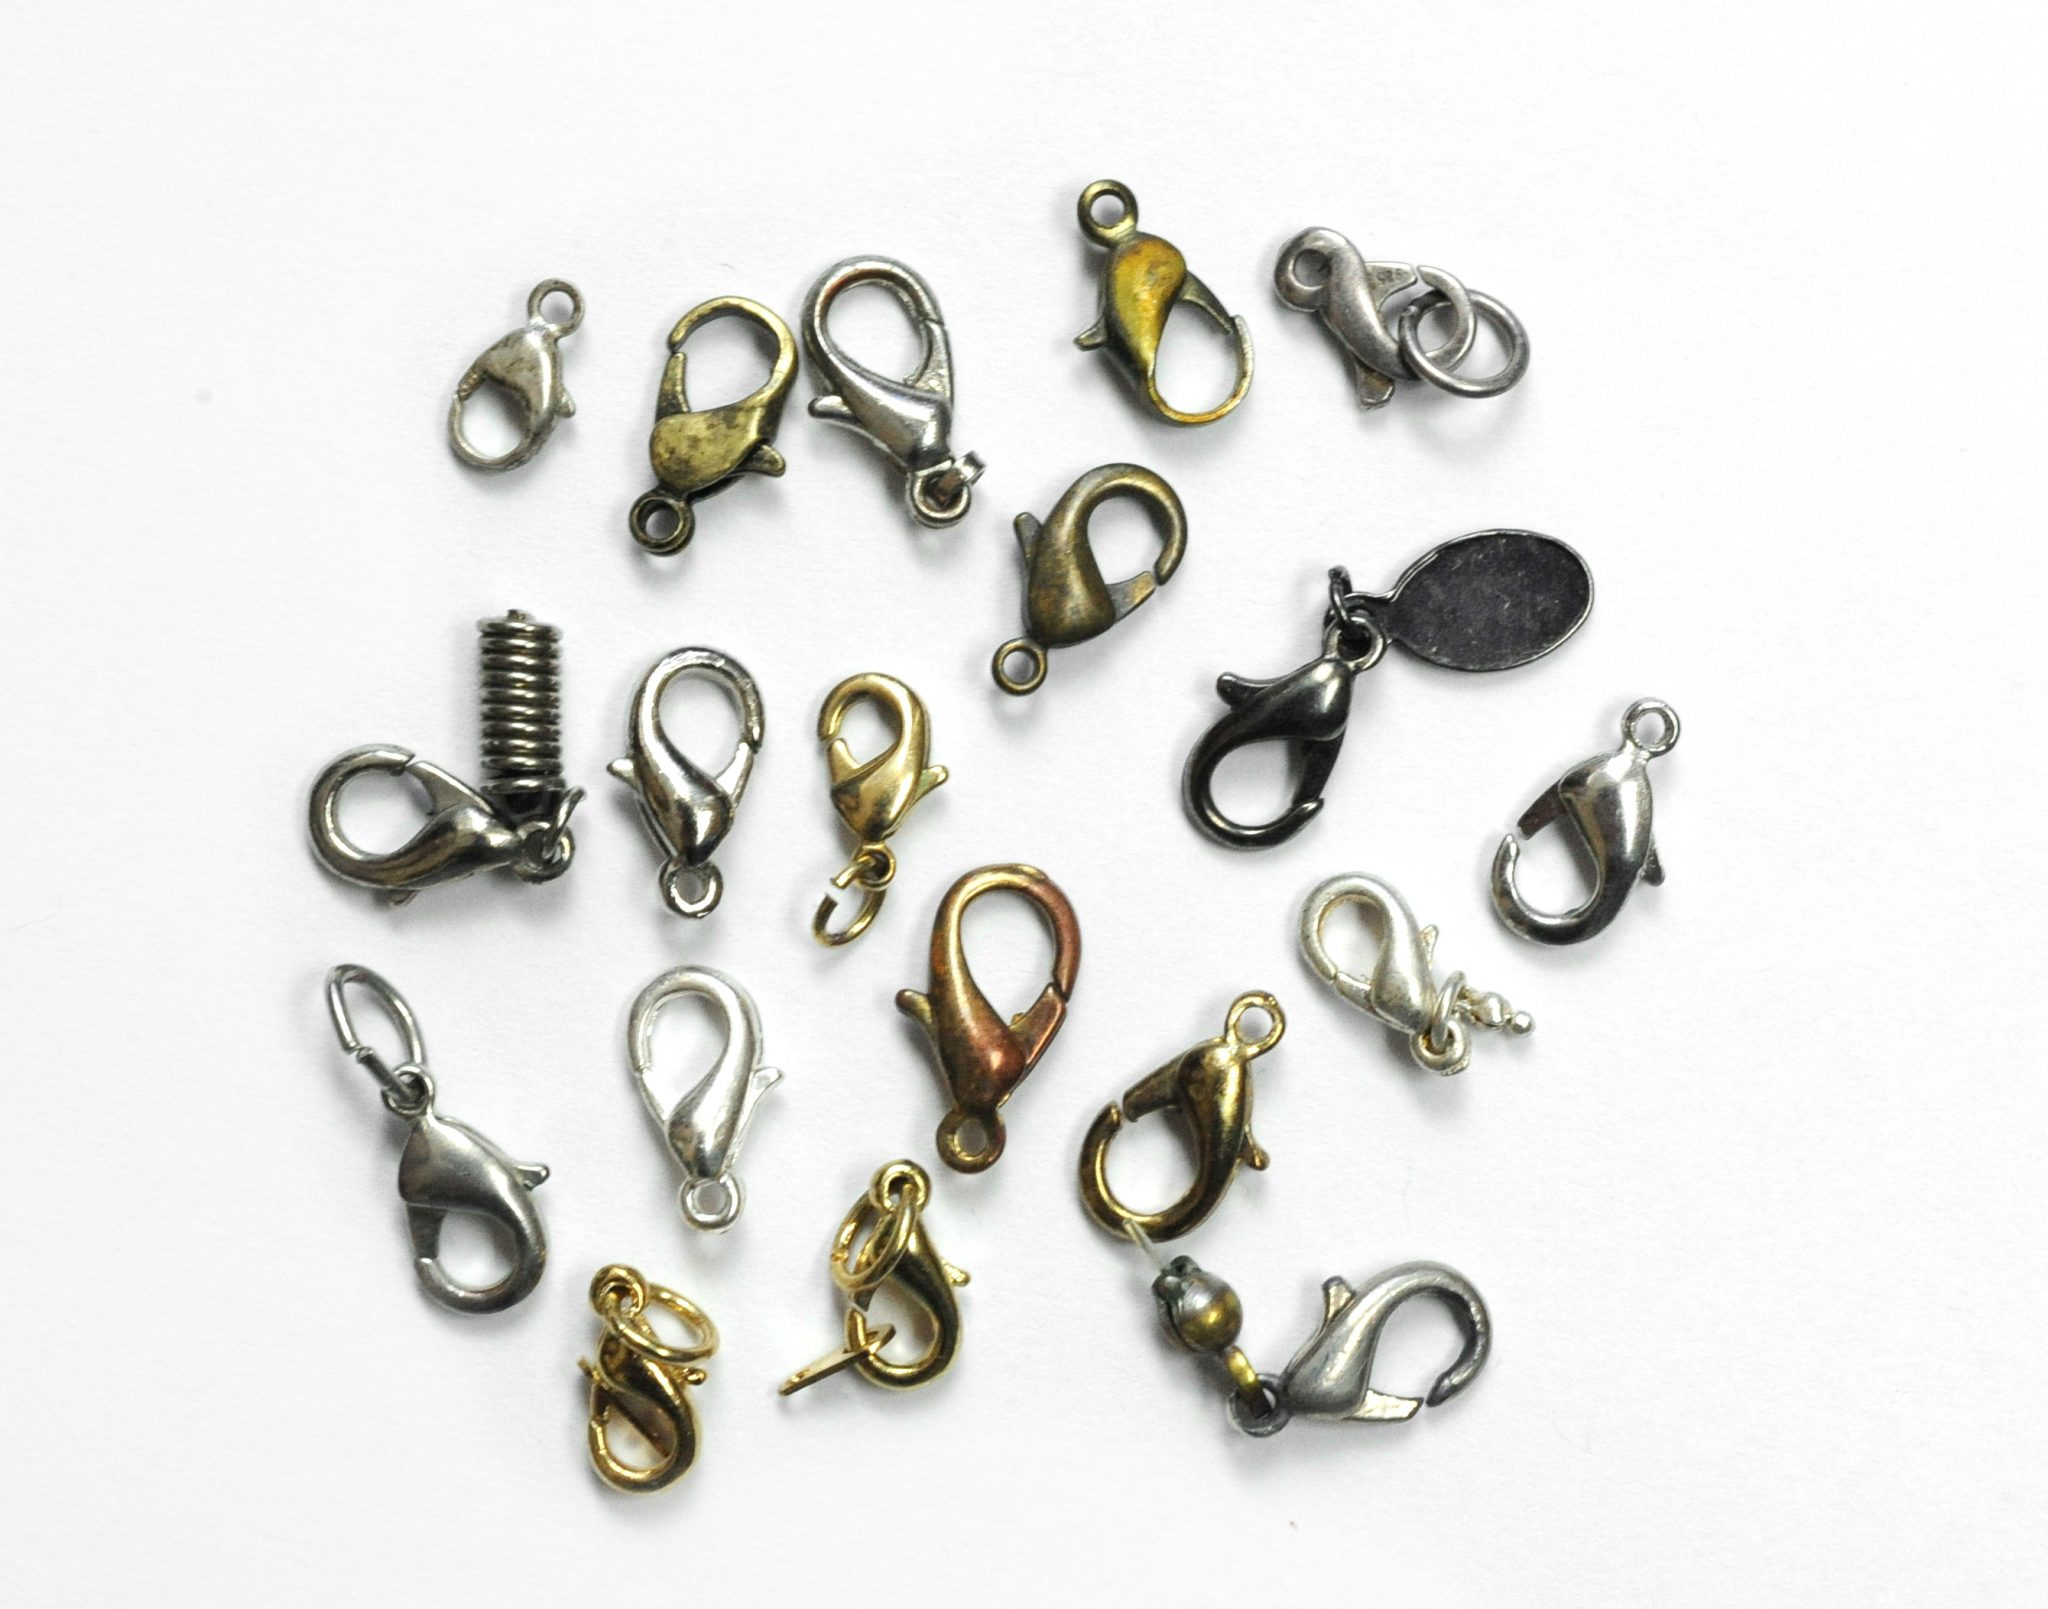 10 Grams of Mixed Metal Lobster Claw Necklace Clasps